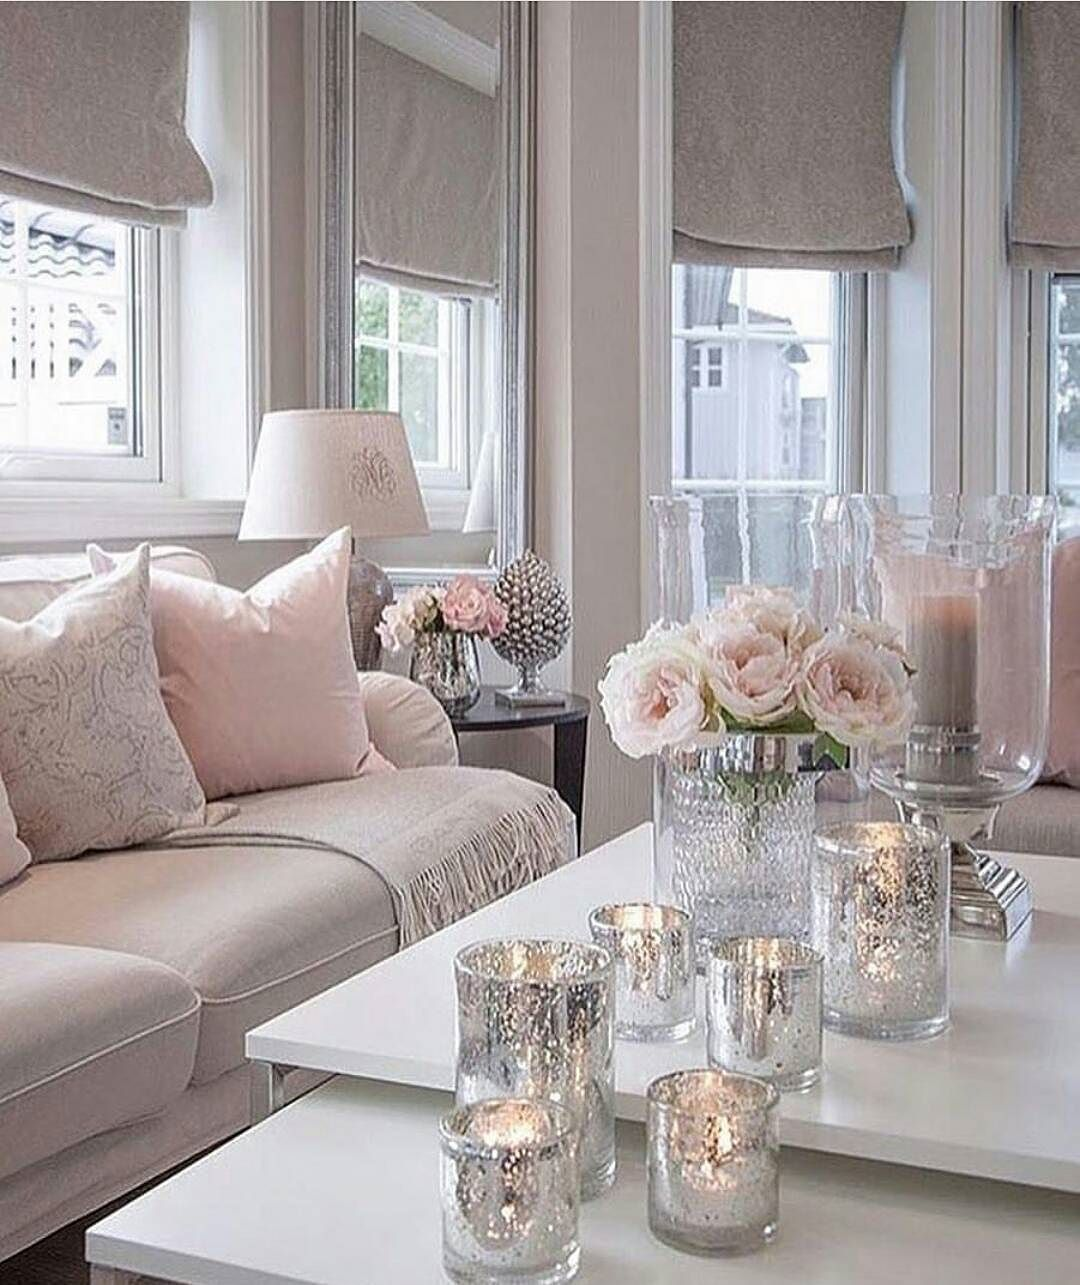 Muted Pink Grey Tones In The Home Remain A Popular